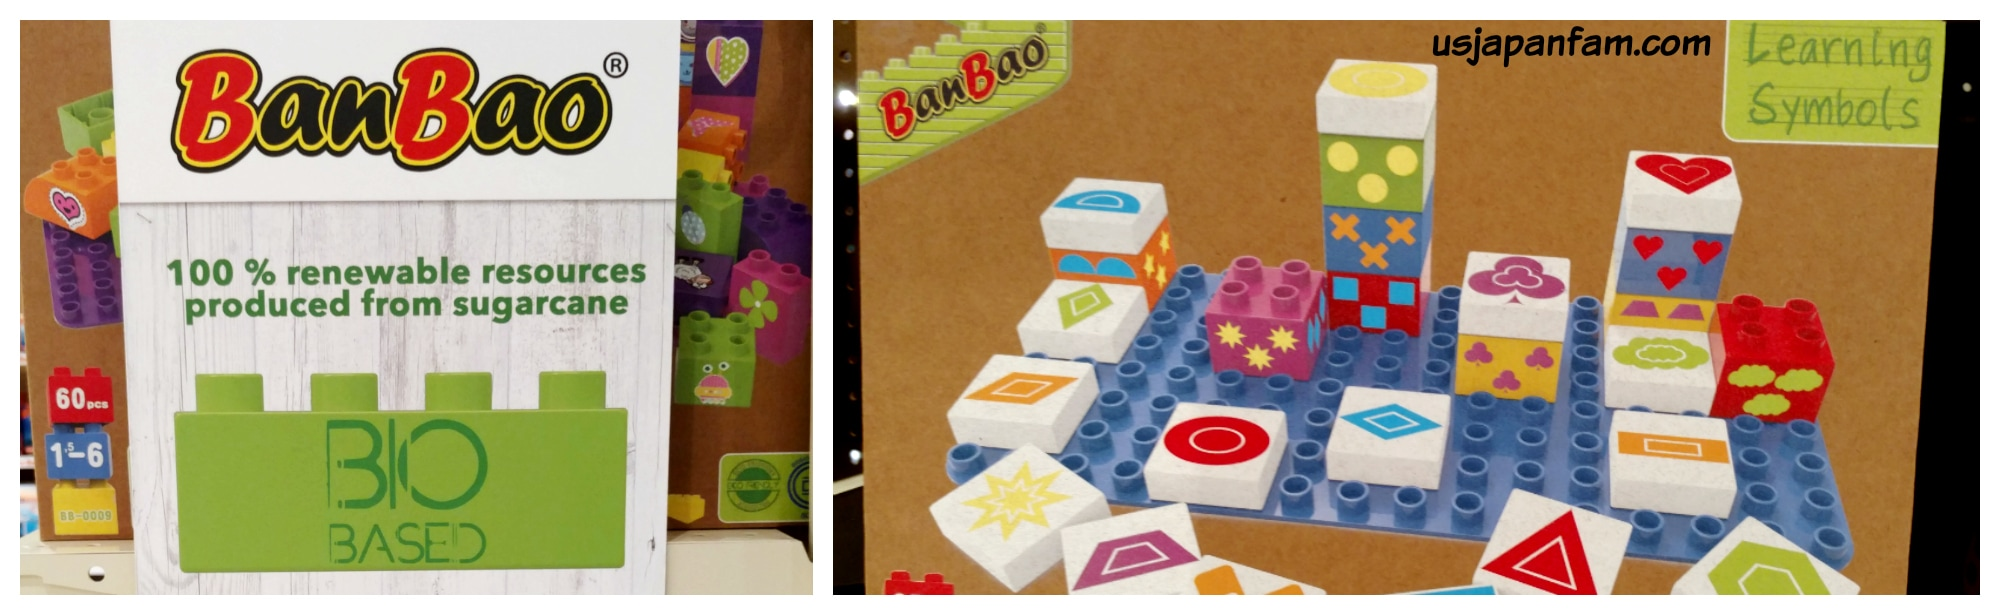 BanBao Bio-Based Blocks are one of US Japan Fam's BEST TOYS from Toy Fair 2017!